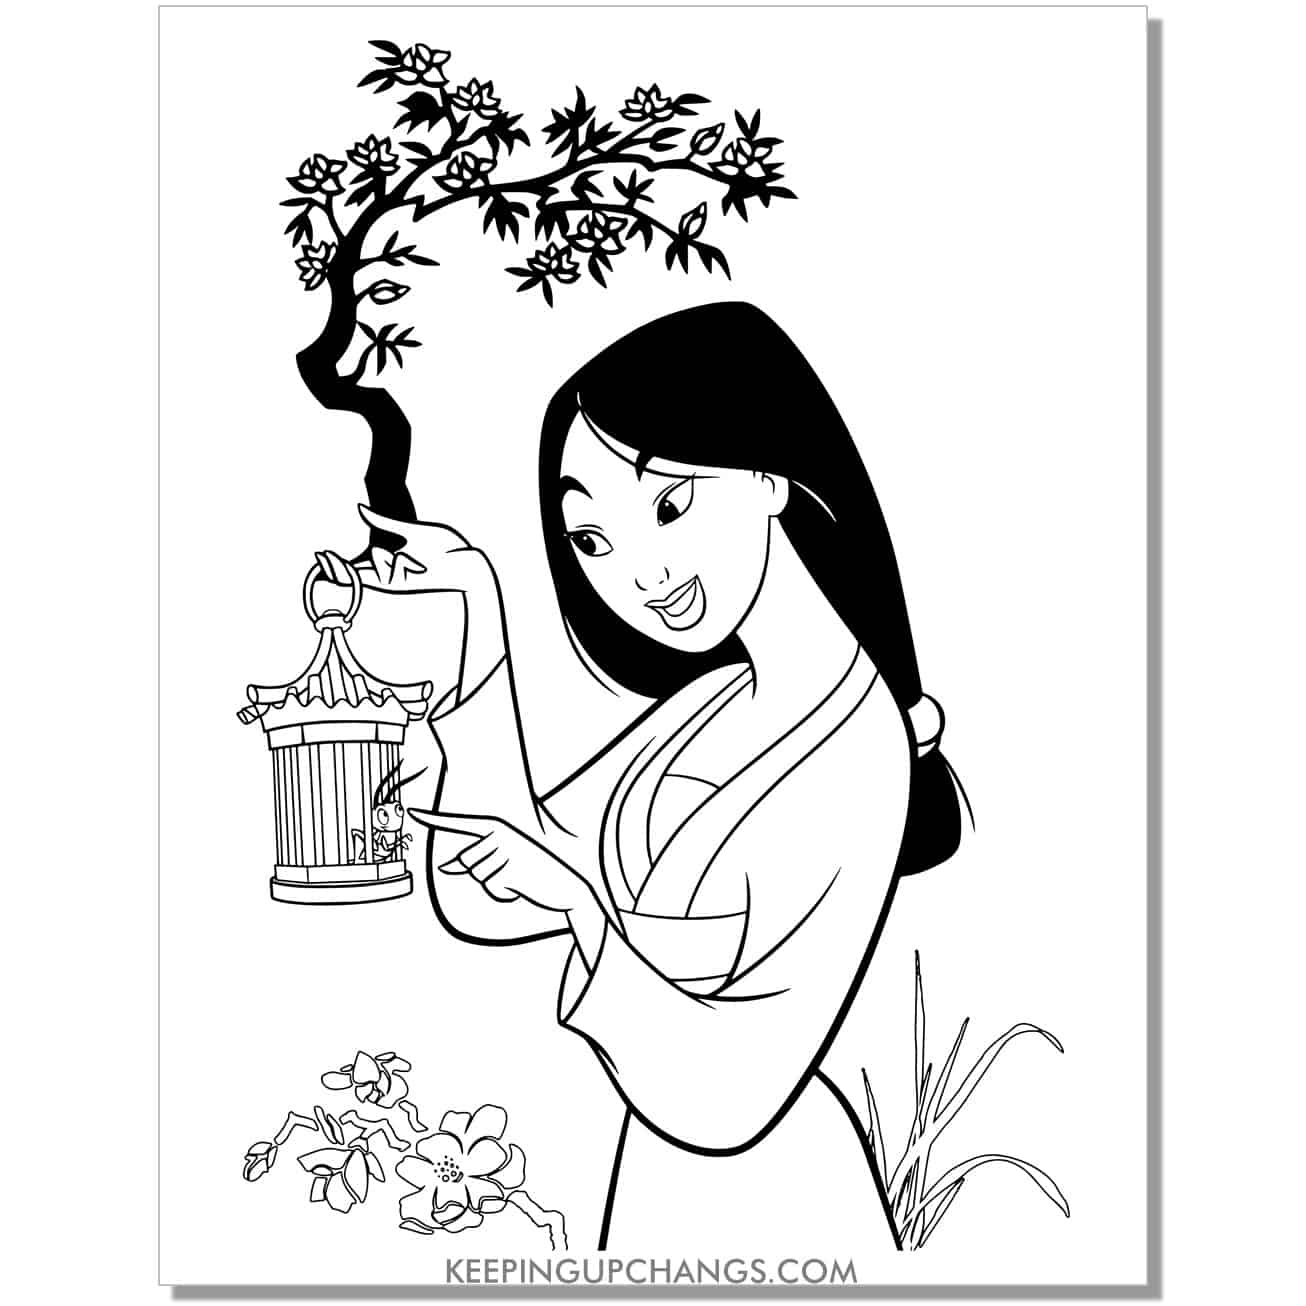 mulan playing with good luck cricket in cage and flowerscoloring page.